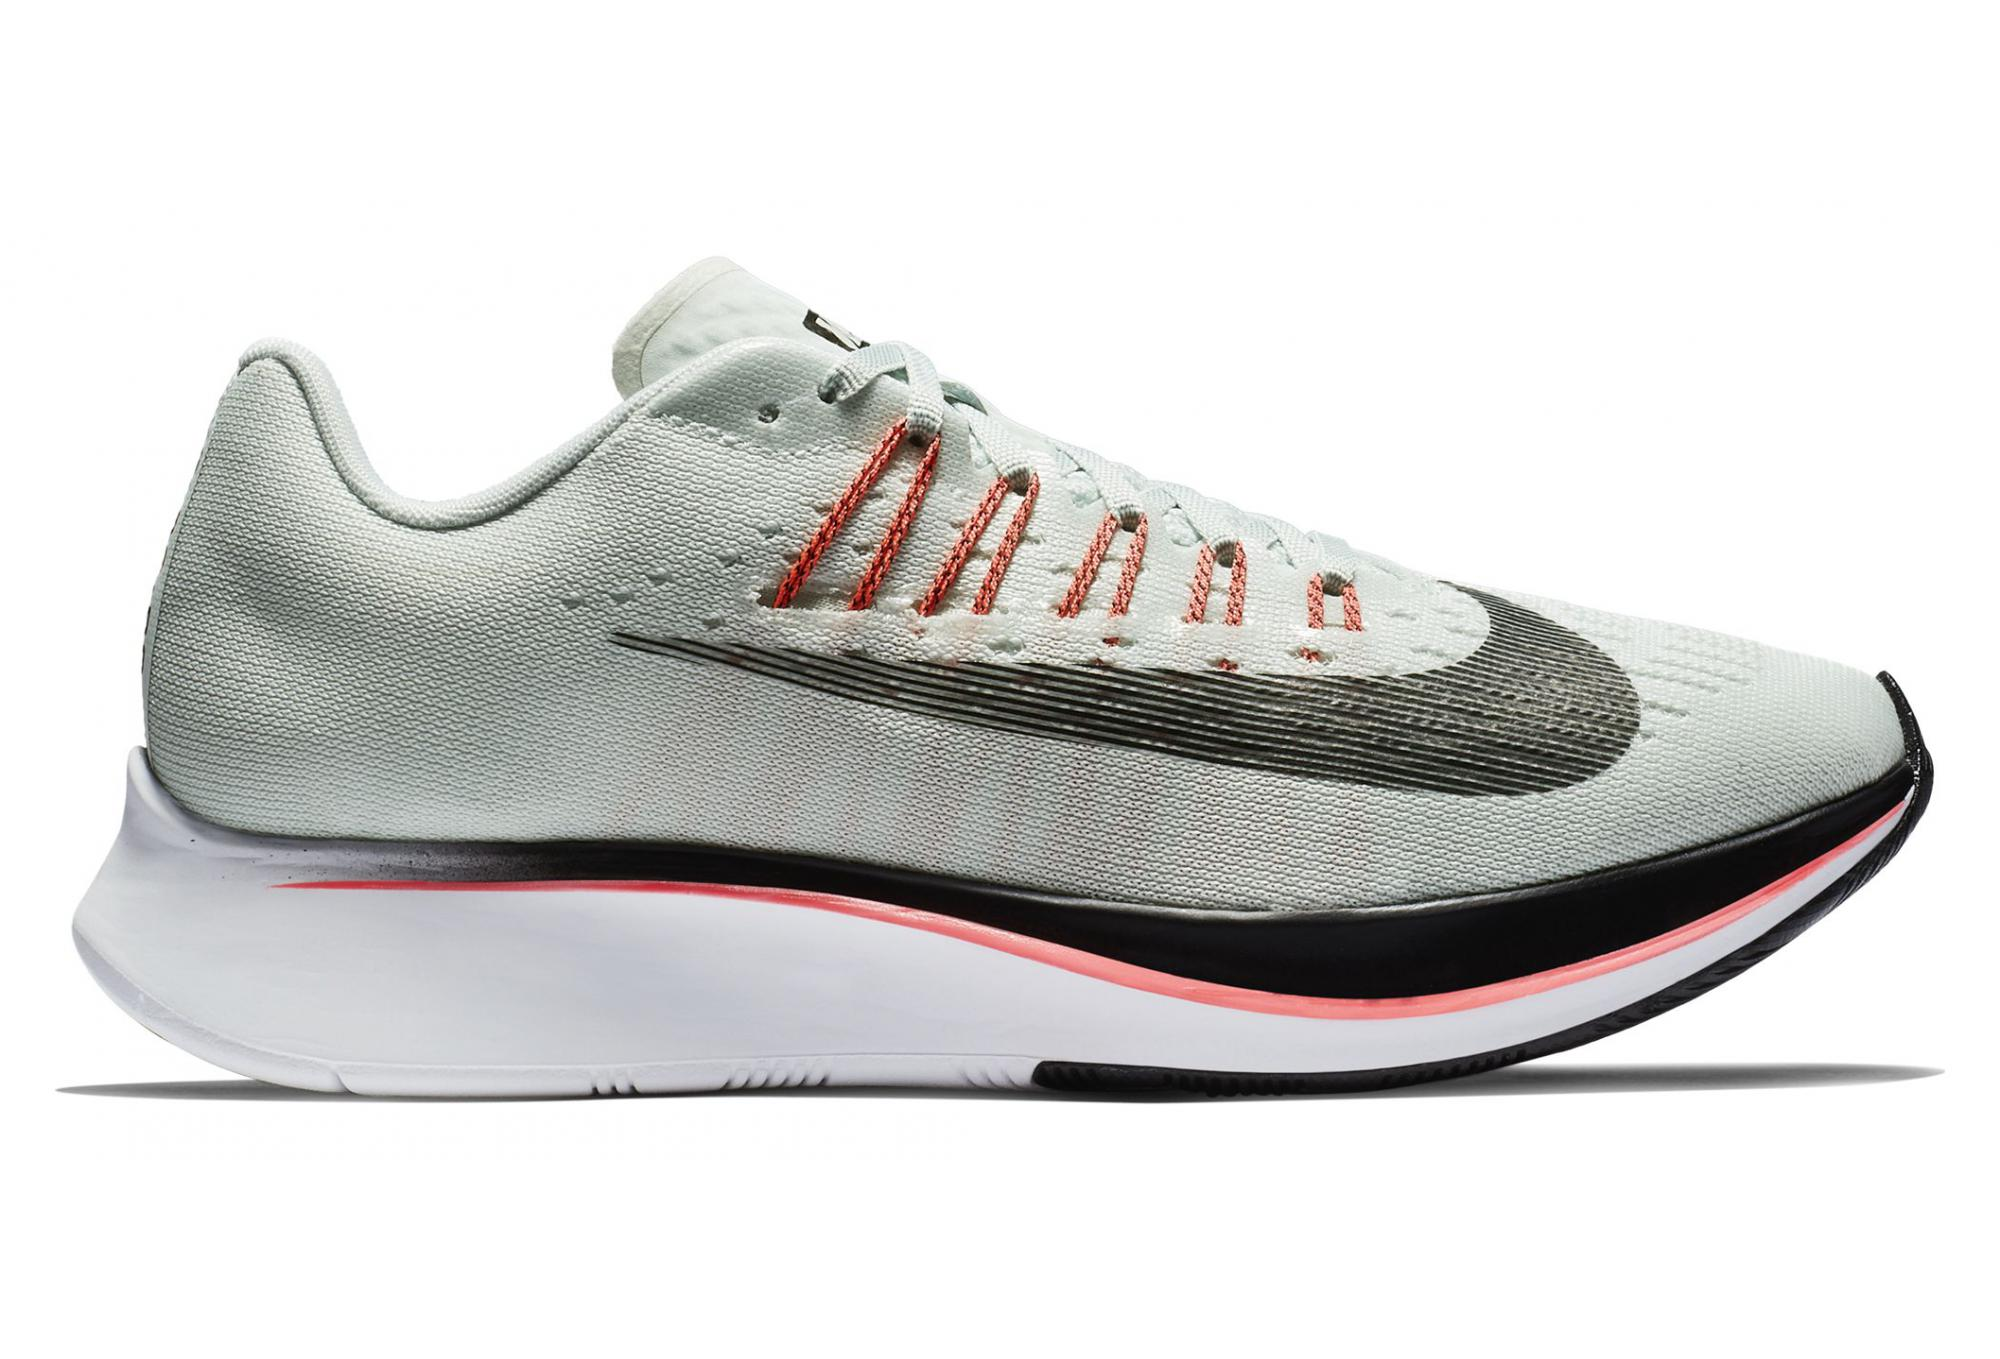 Nike Zoom Grey And Green Nike Shoes Zoom Fly Green Grey Pink Women